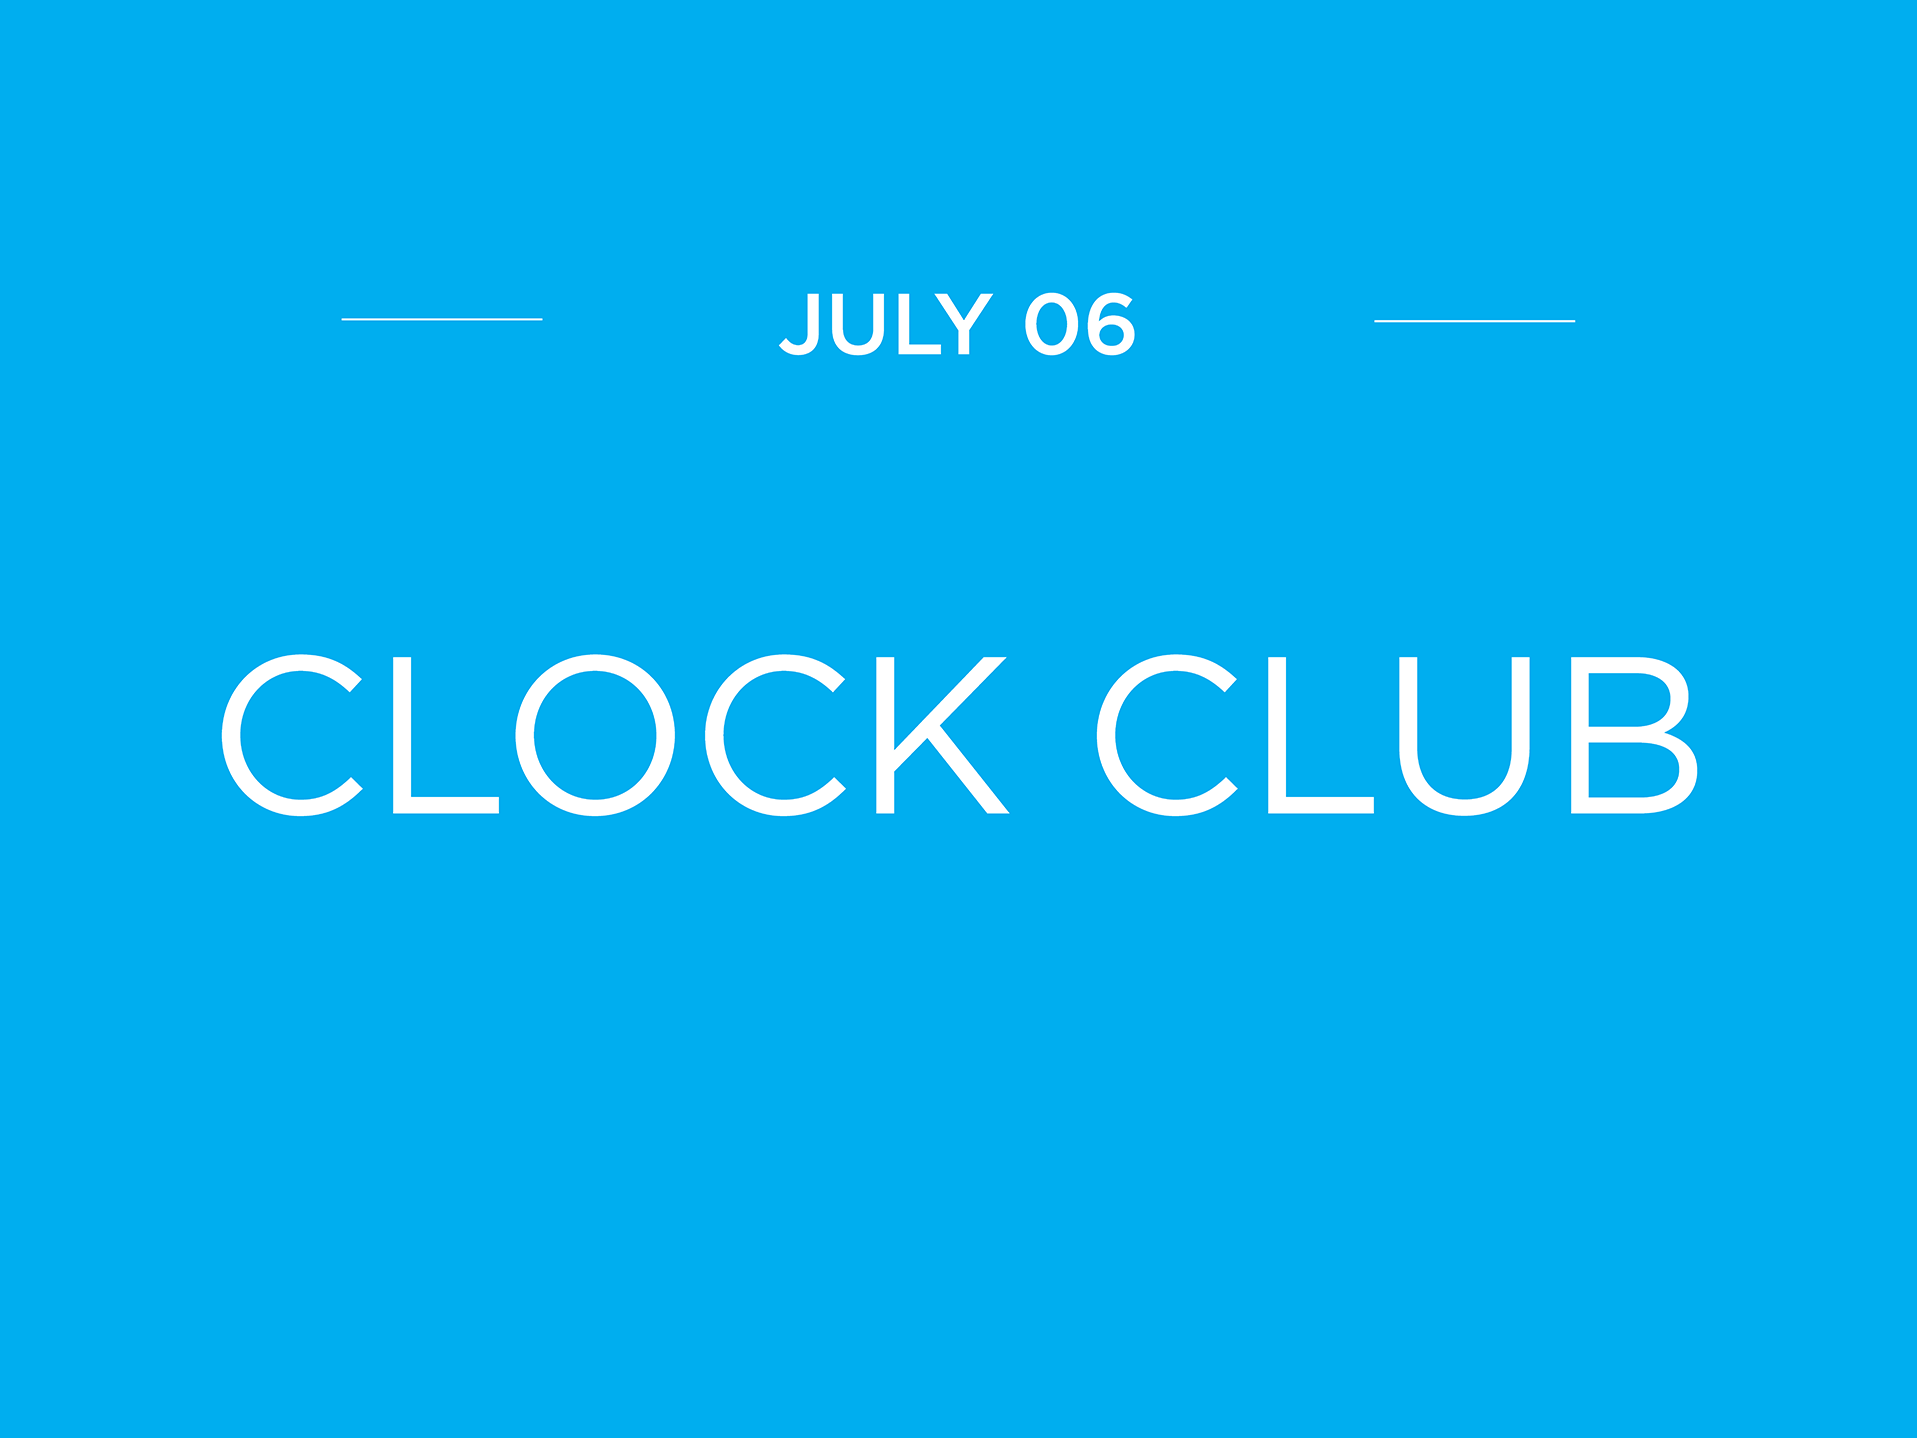 Summer UK Clock Club Meeting ClockClub2018